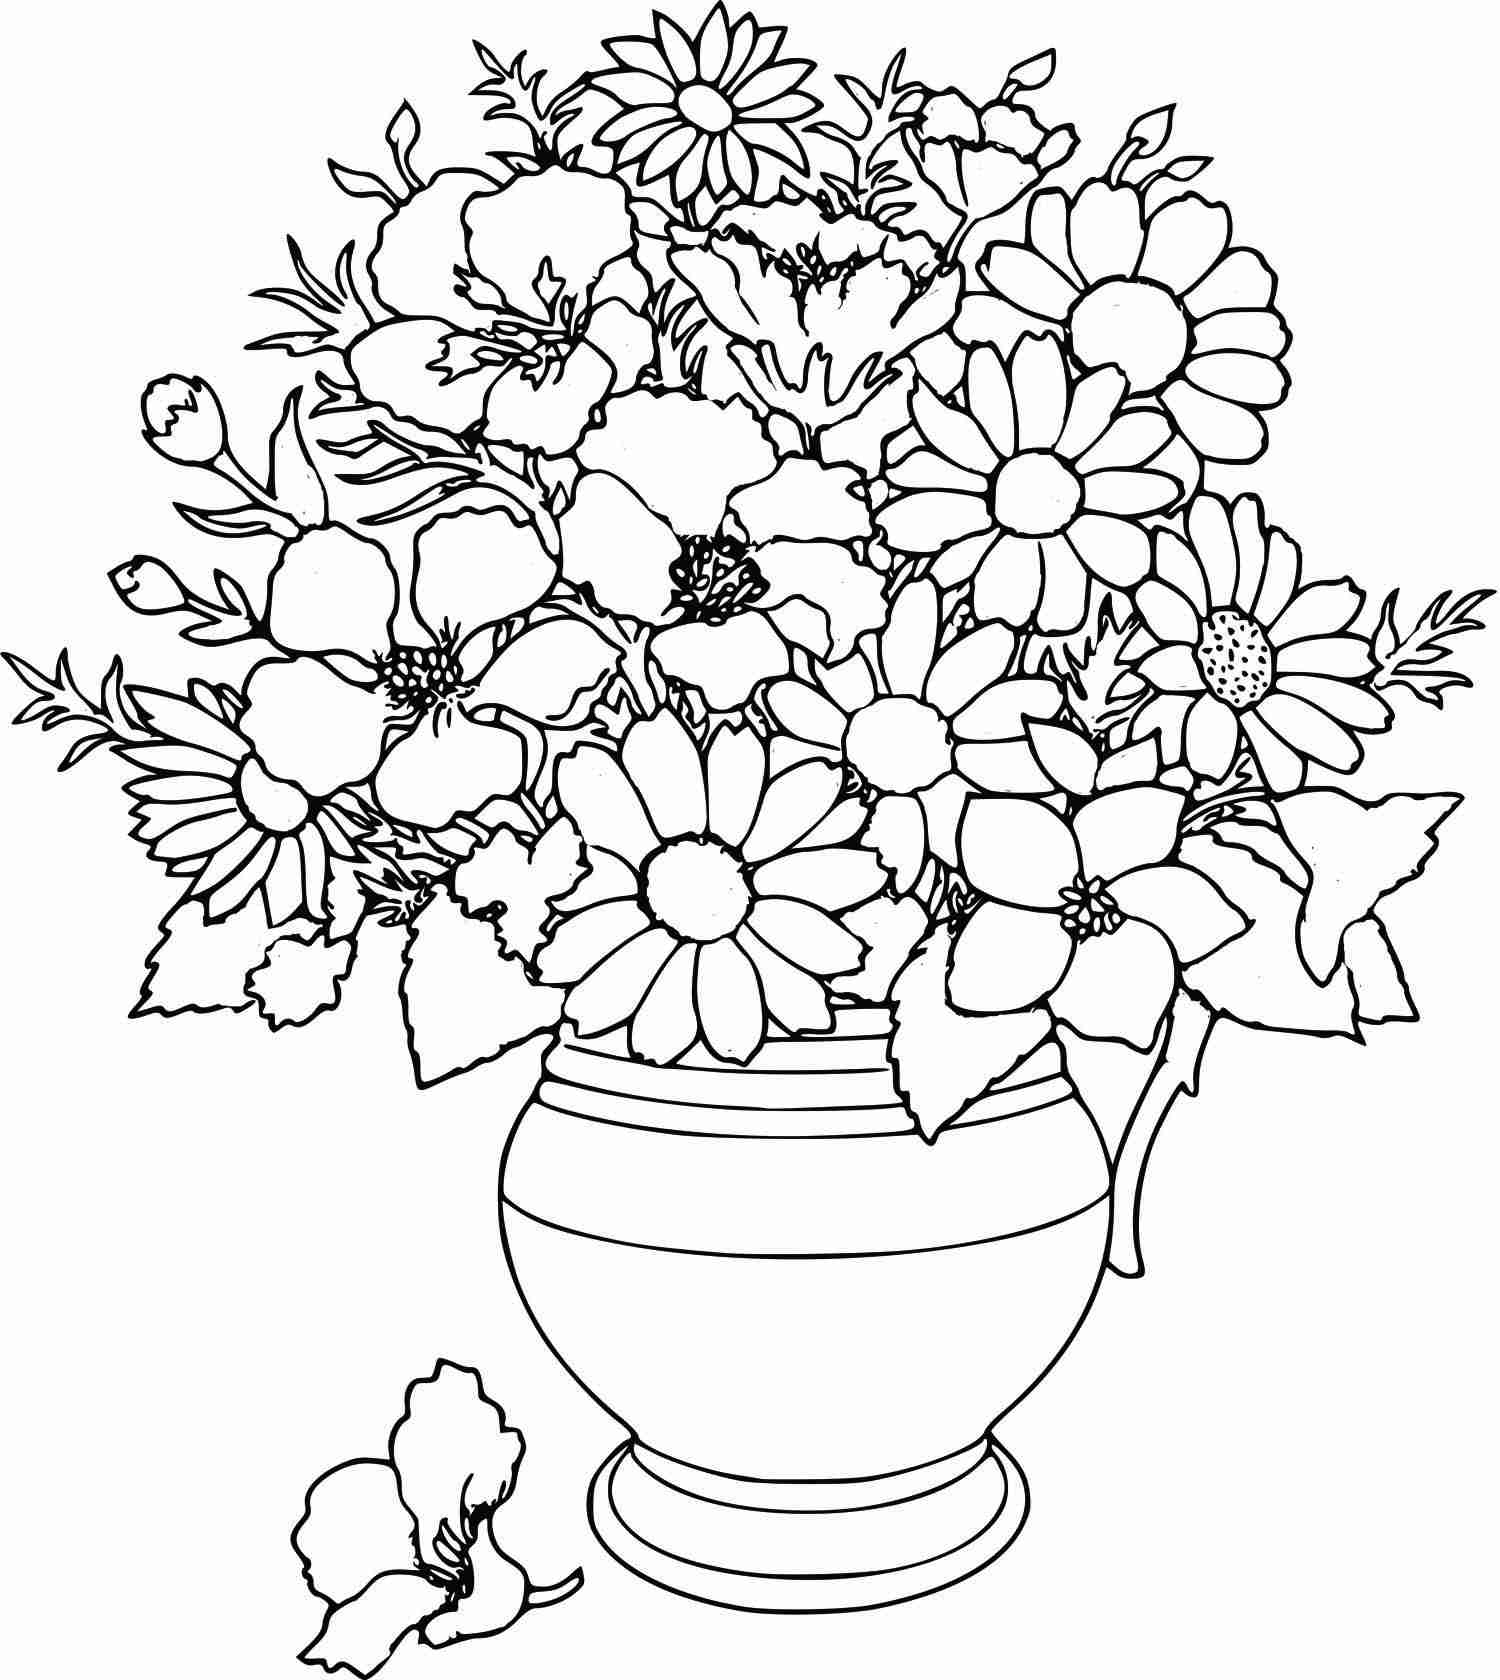 flowers to color free easy to print flower coloring pages tulamama flowers color to